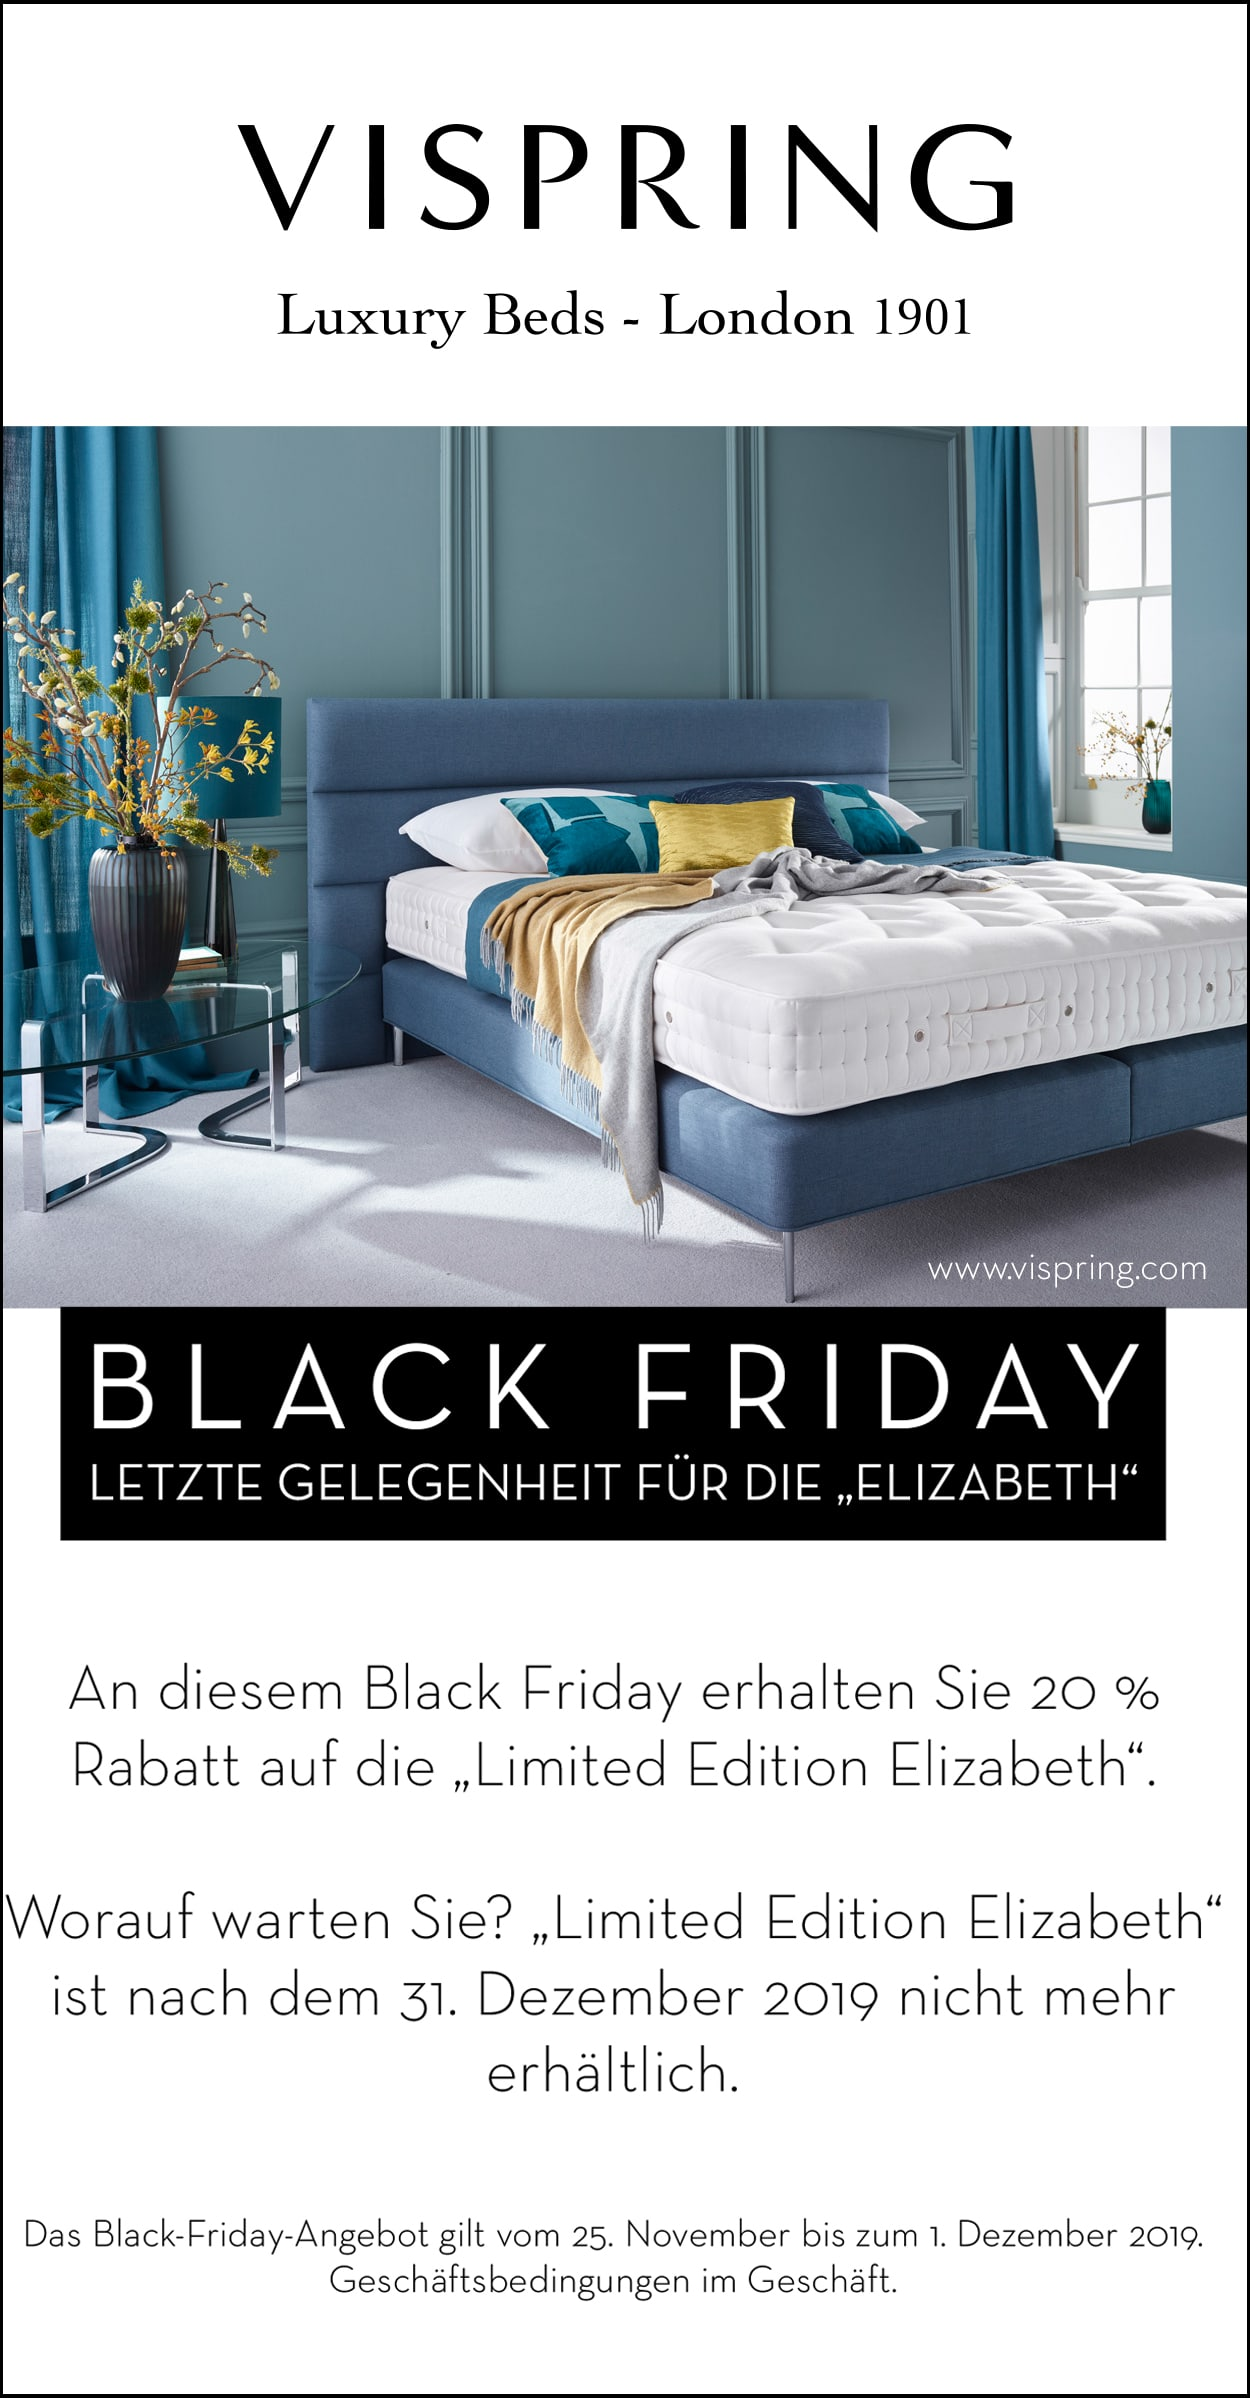 Vispring Black Friday Bischoff Betten